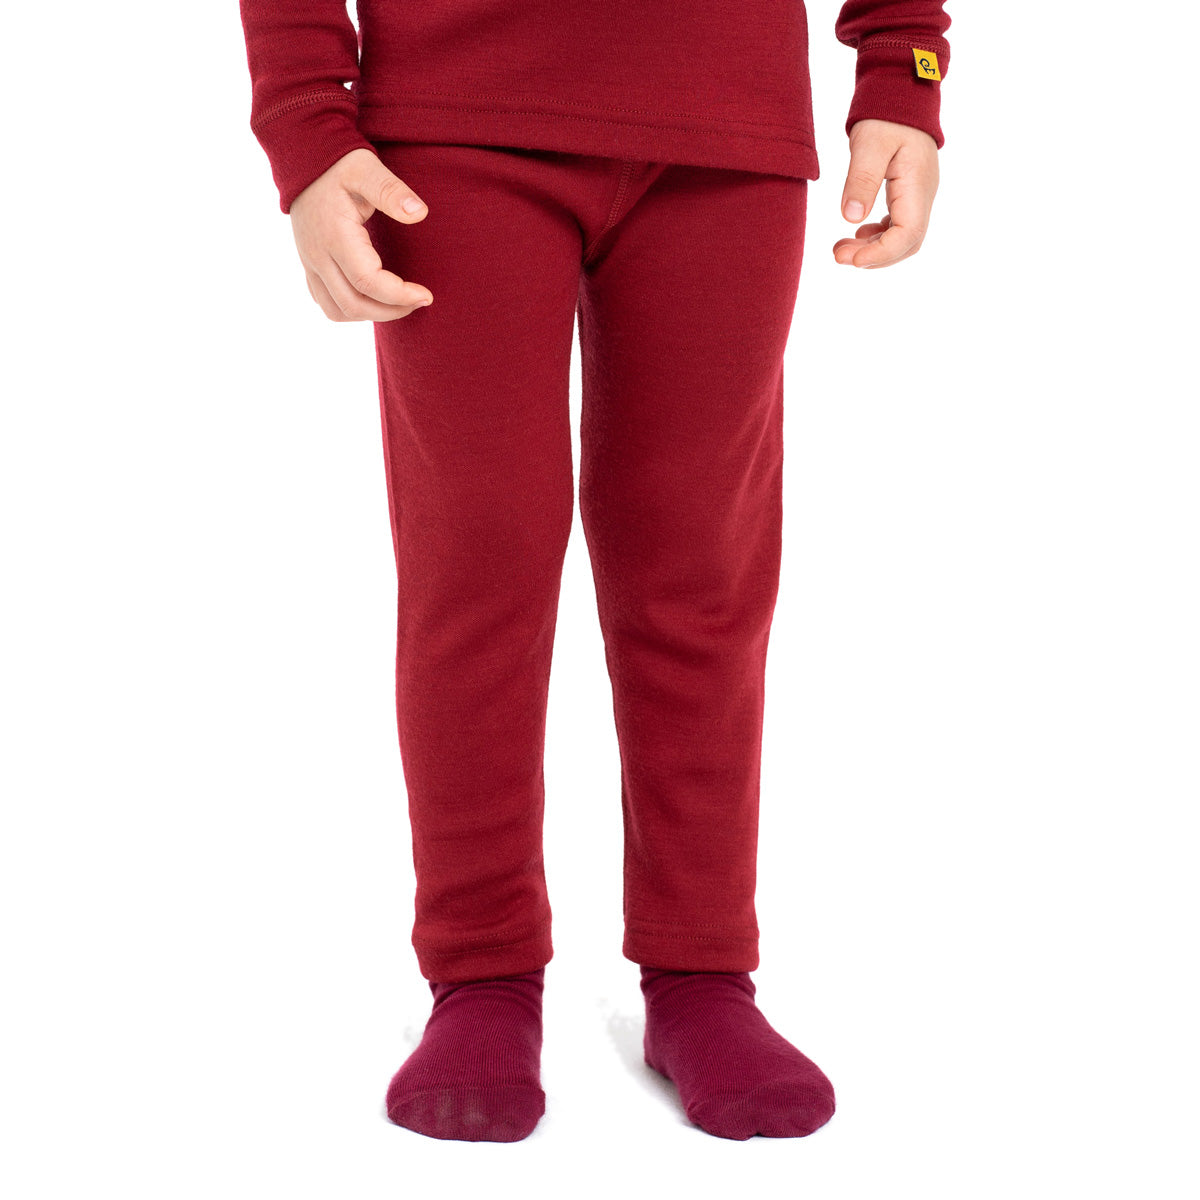 Kids' Merino 250 Pants Royal Cherry